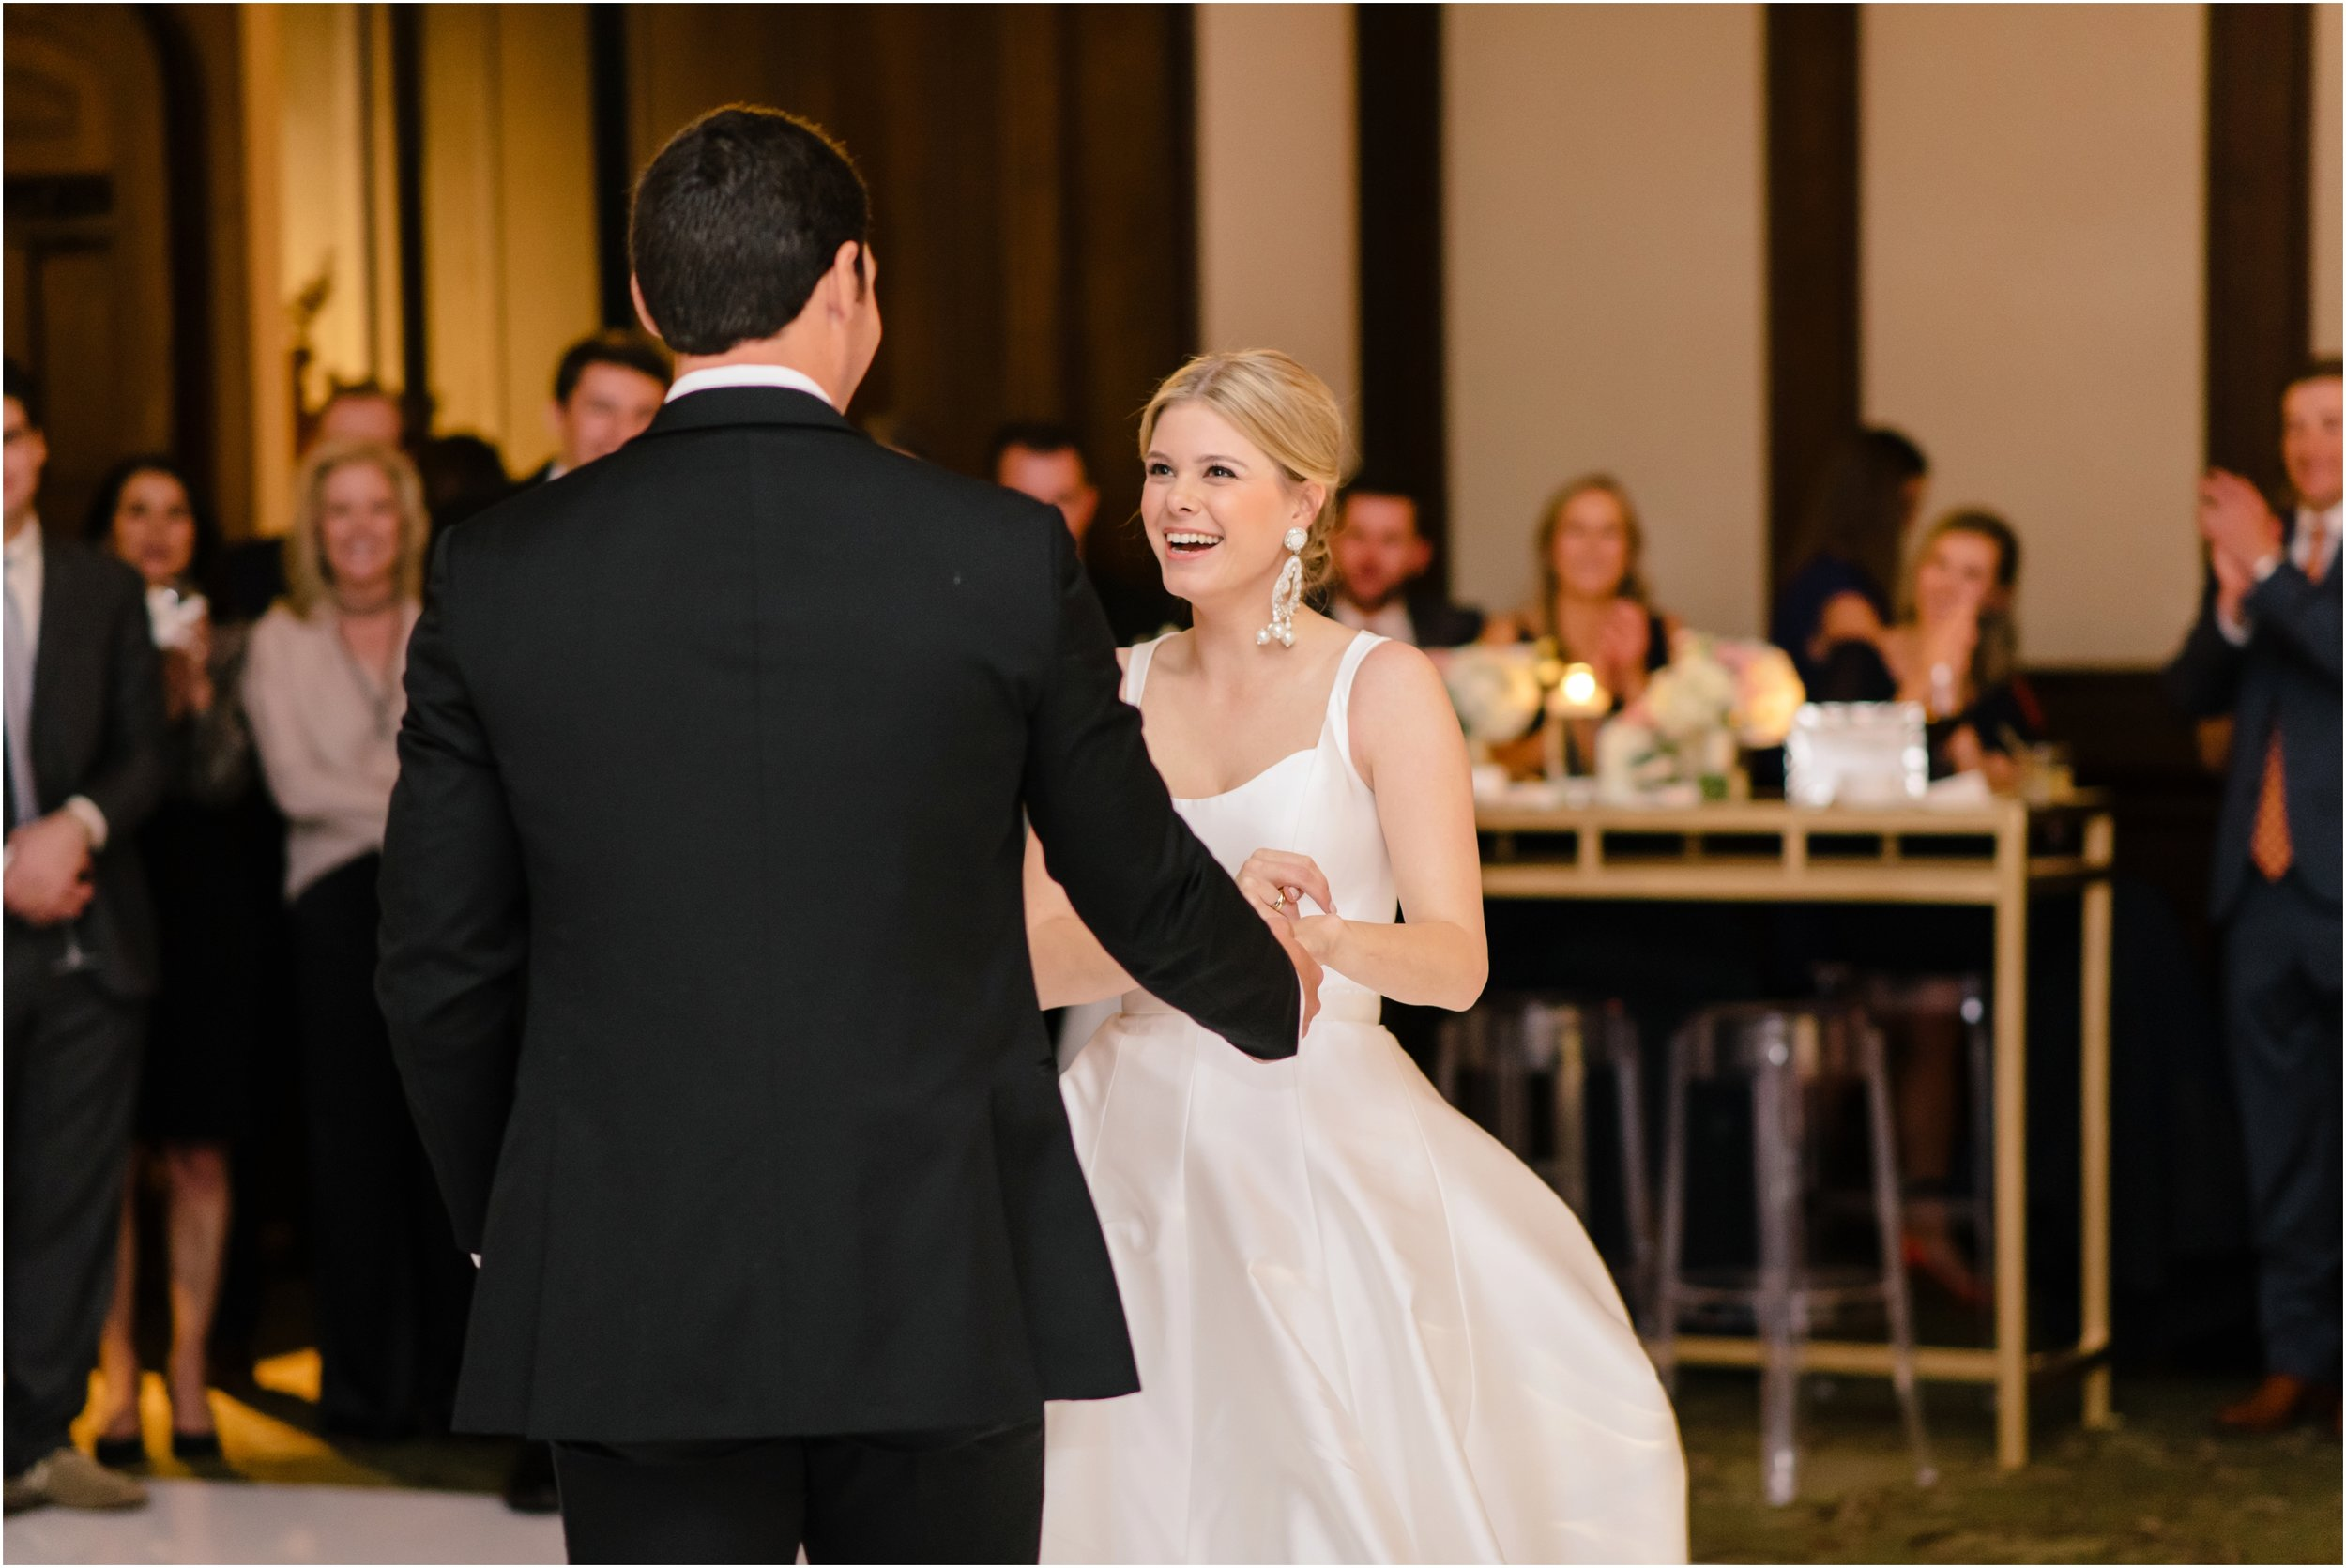 dallasweddingphotographer_DallasCountryClub_Hannah+Matthew_0046.jpg